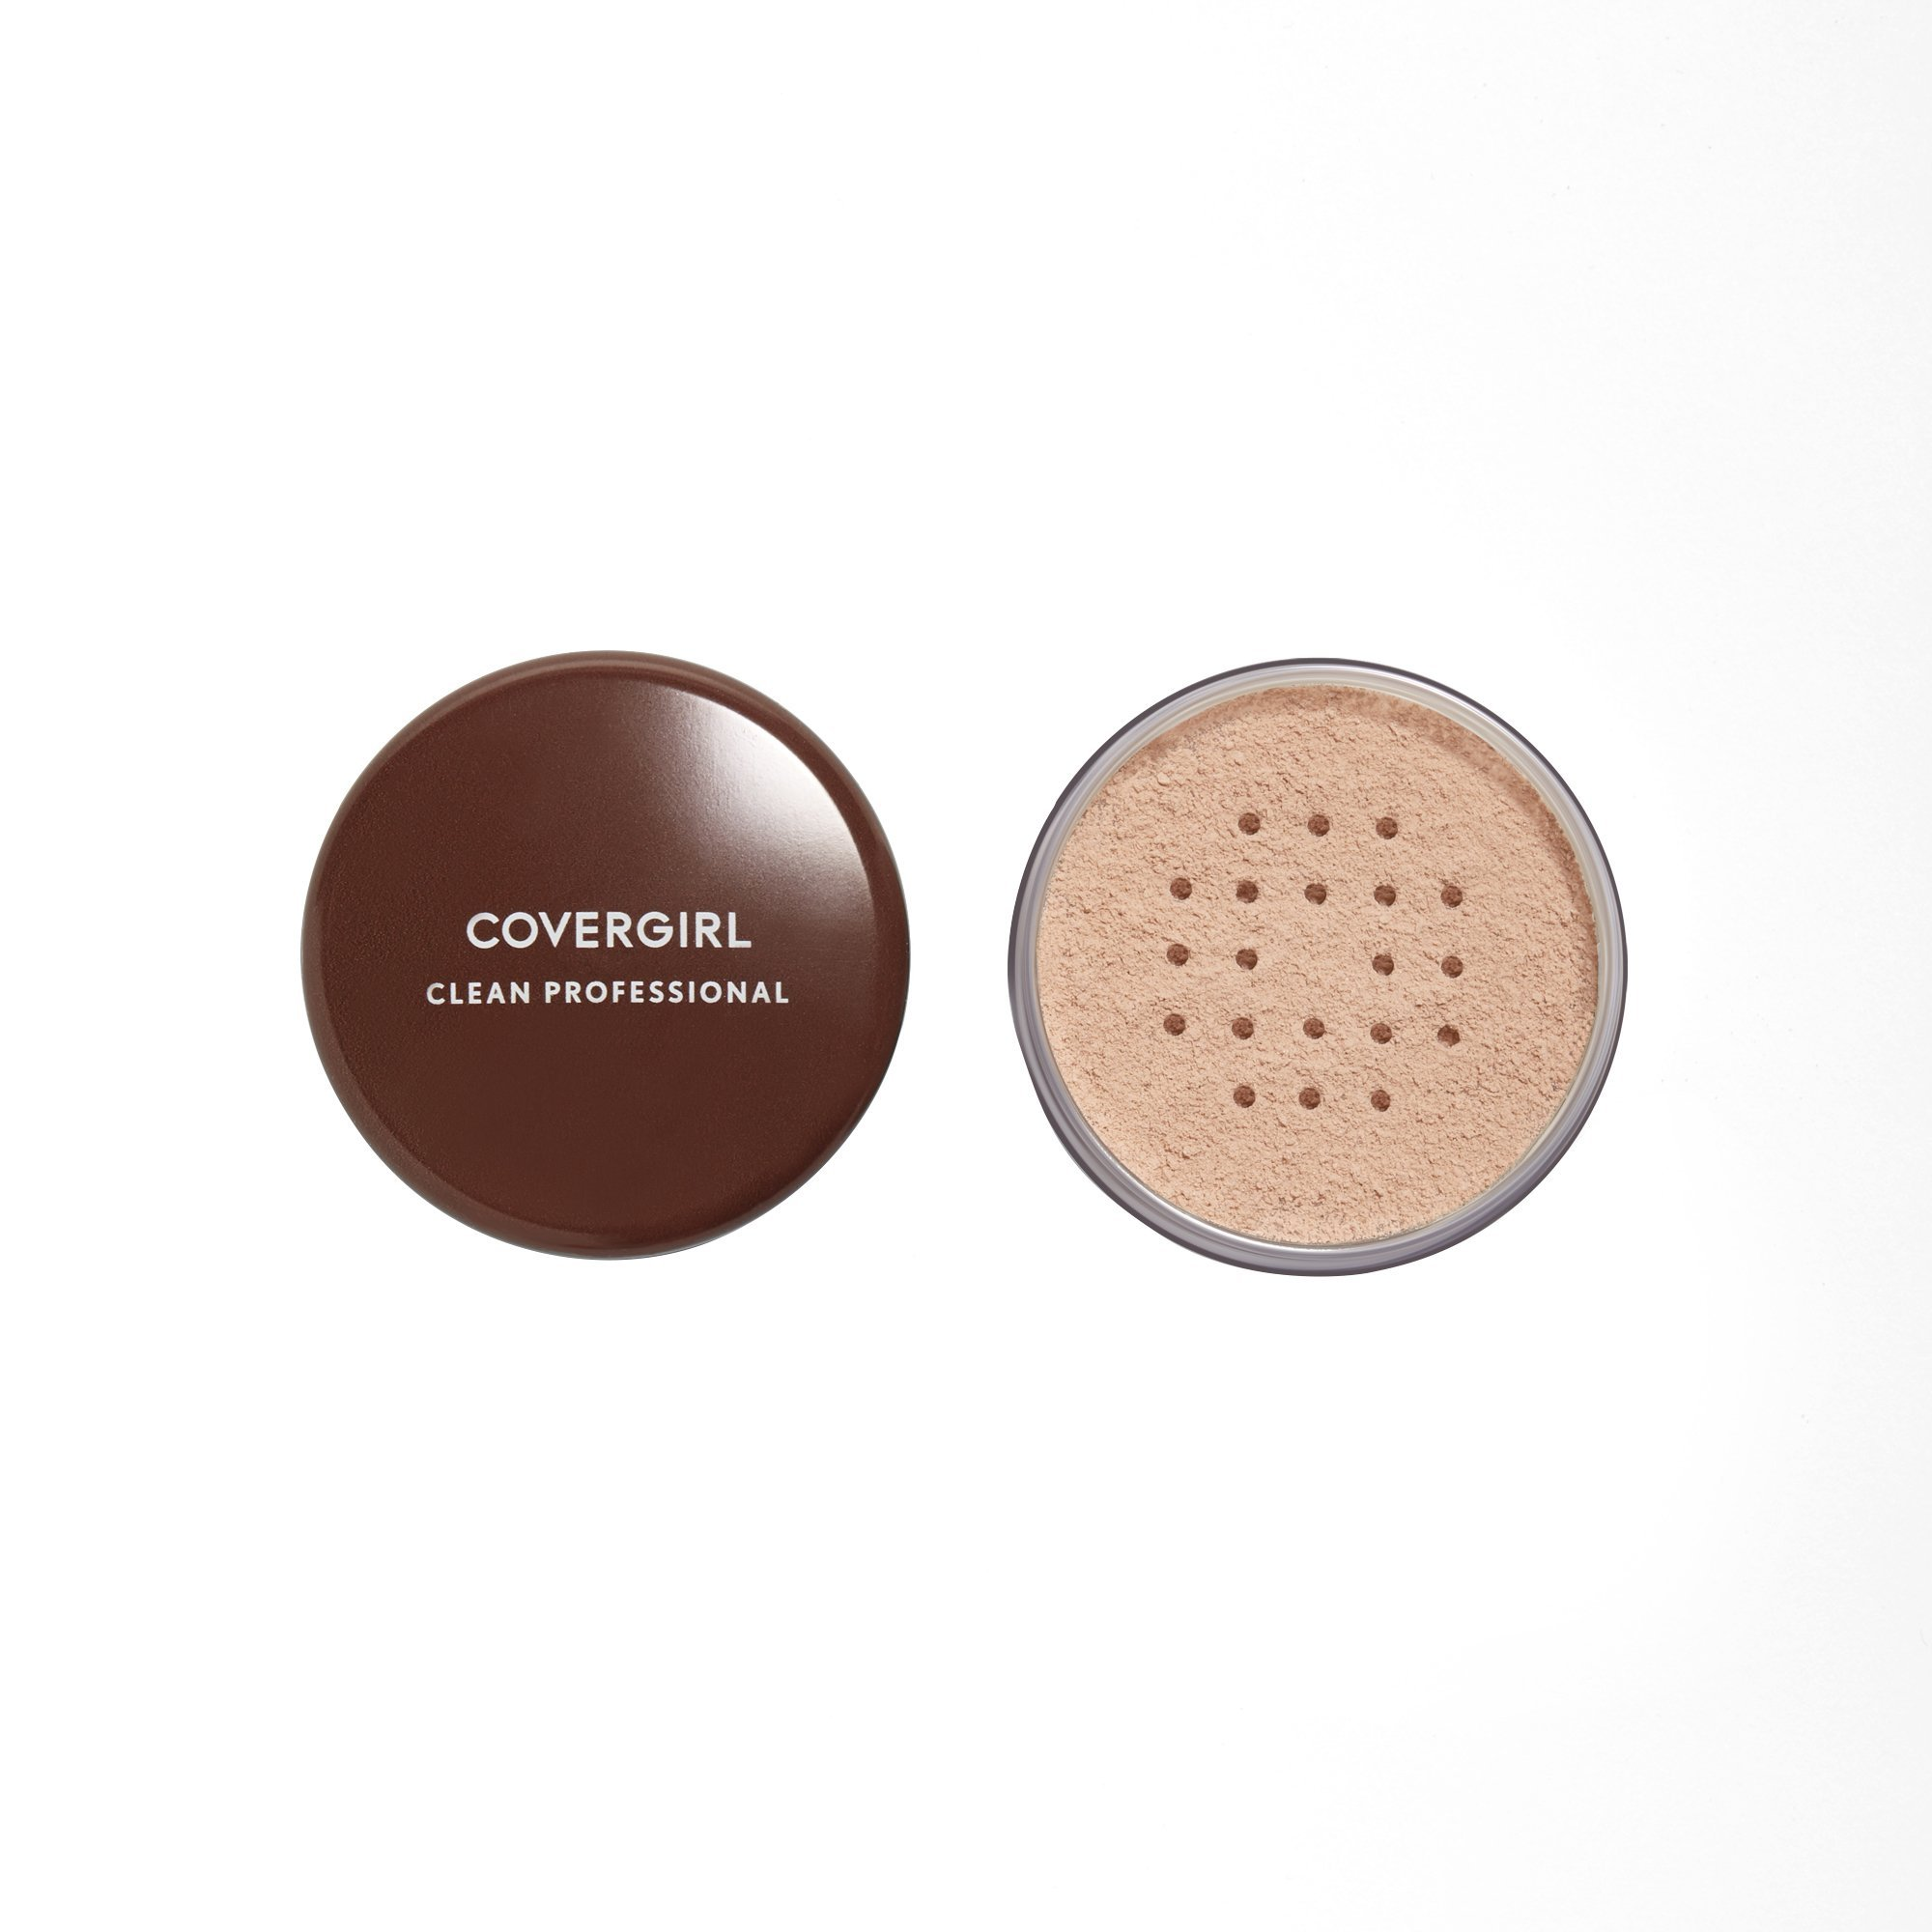 COVERGIRL Professional Loose Finishing Powder, 1 Container (0.7 oz), Translucent Light Tone, Sets Makeup, Controls Shine, Won't Clog Pores (packaging may vary)